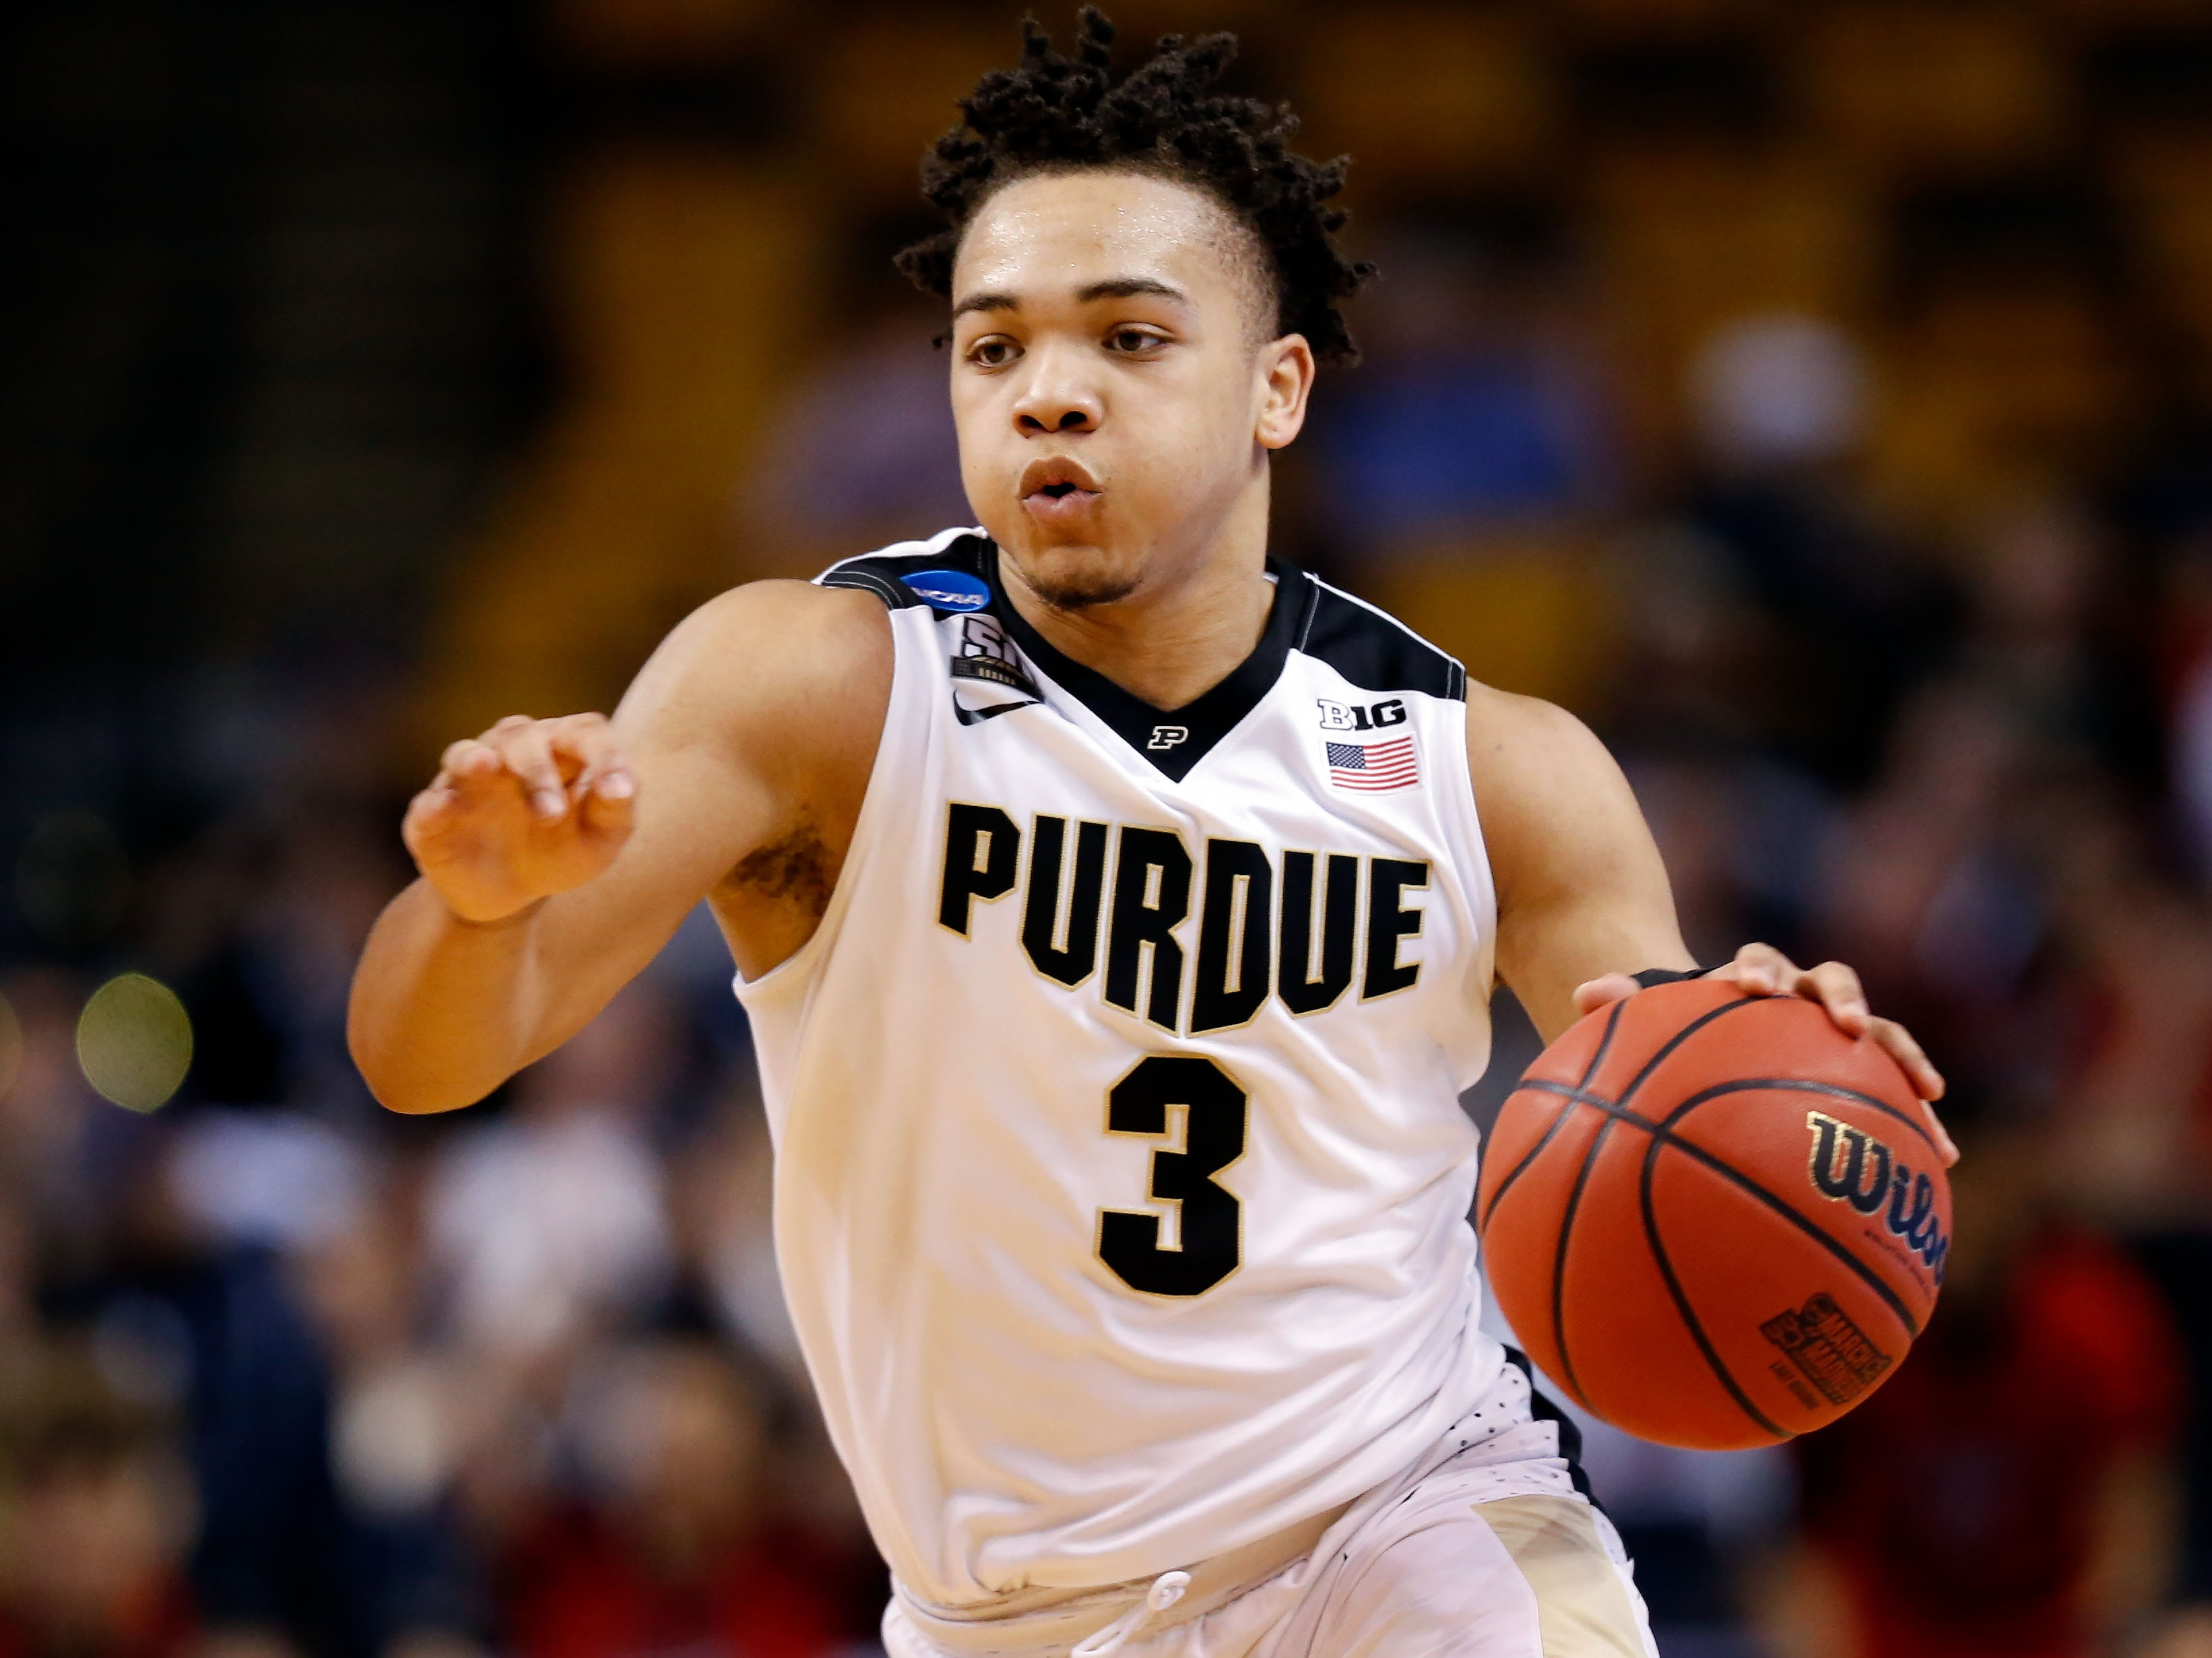 Purdue's junior guard Carsen Edwards is a strong candidate on the watch list.